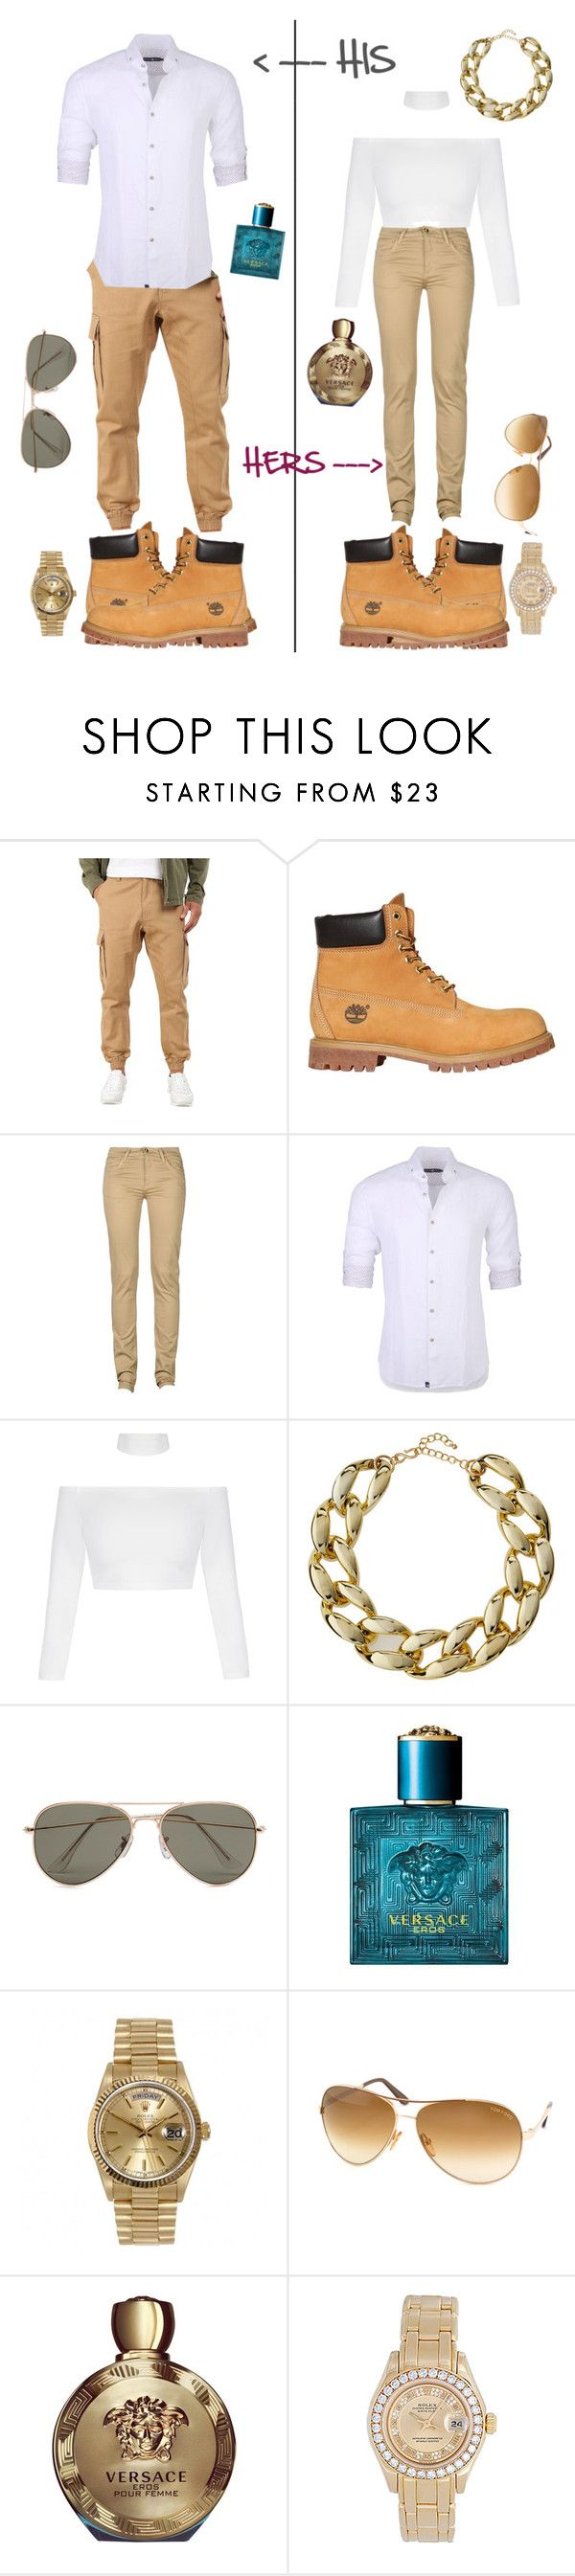 """Couple Outfits ♡"" by chanal ❤ liked on Polyvore featuring Staple, Timberland, Monkee Genes, Stone Rose, Kenneth Jay Lane, SELECTED, Versace, Rolex and Tom Ford"